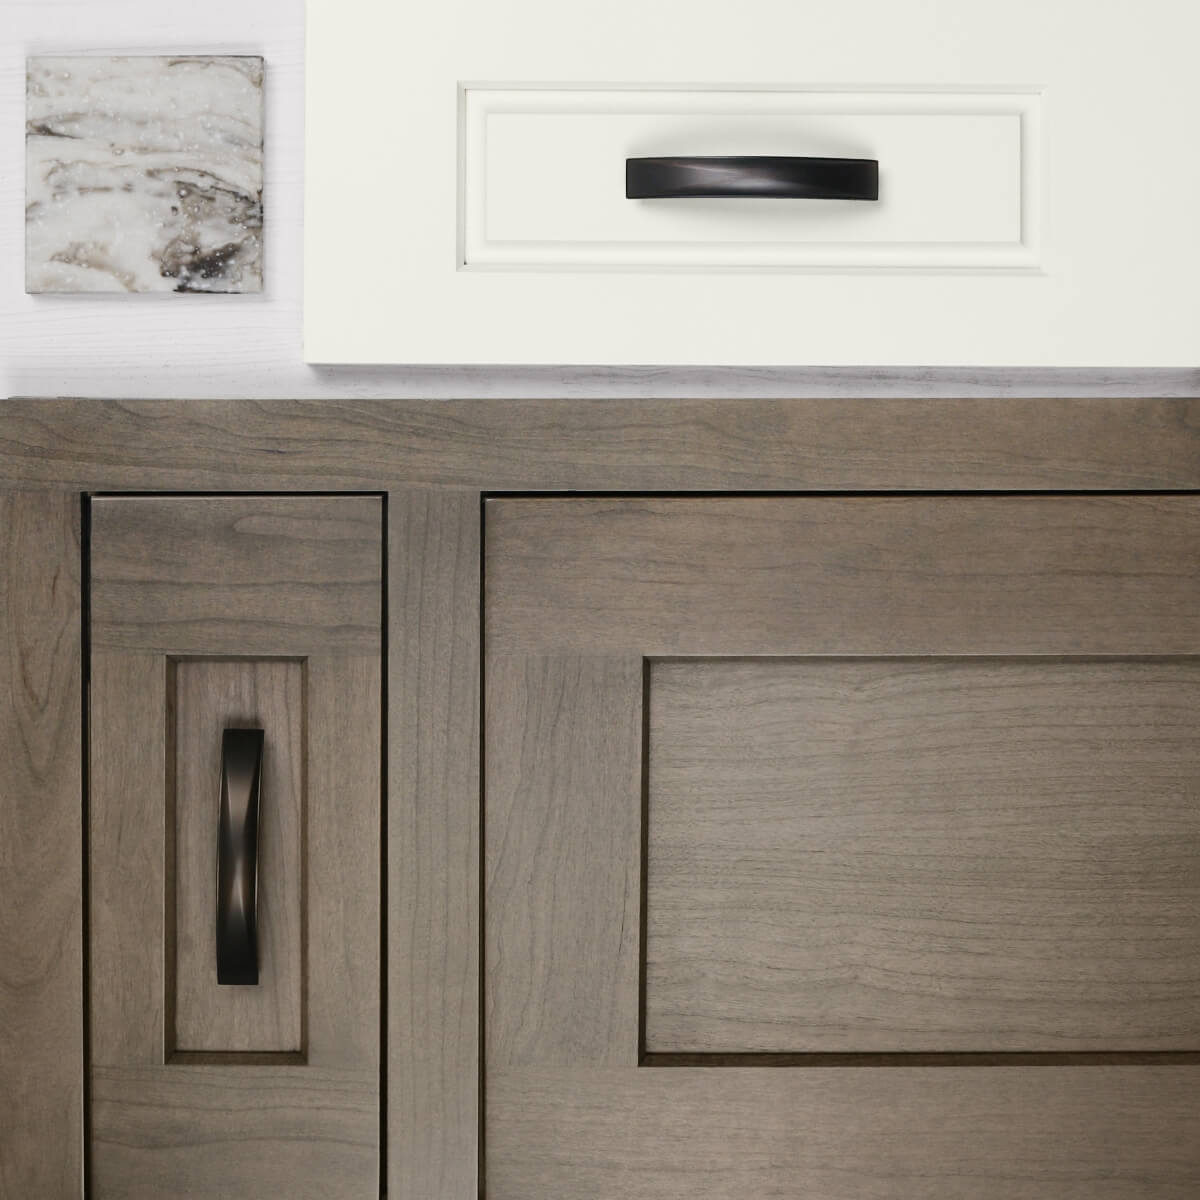 A kitchen remodel mood board with white and true brown stained cabinet door styles.